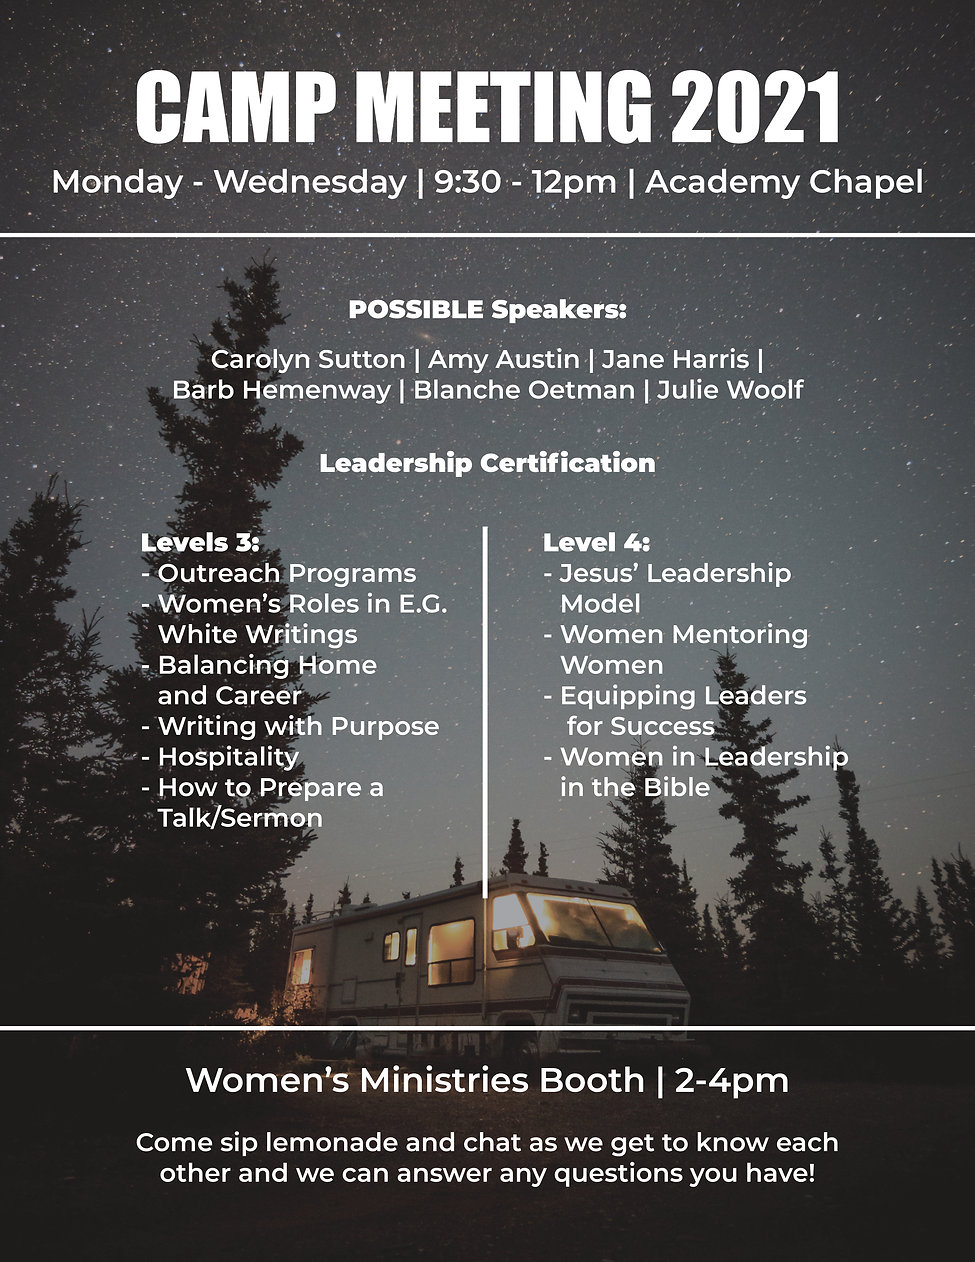 2020 Camp Meeting flyer.jpg